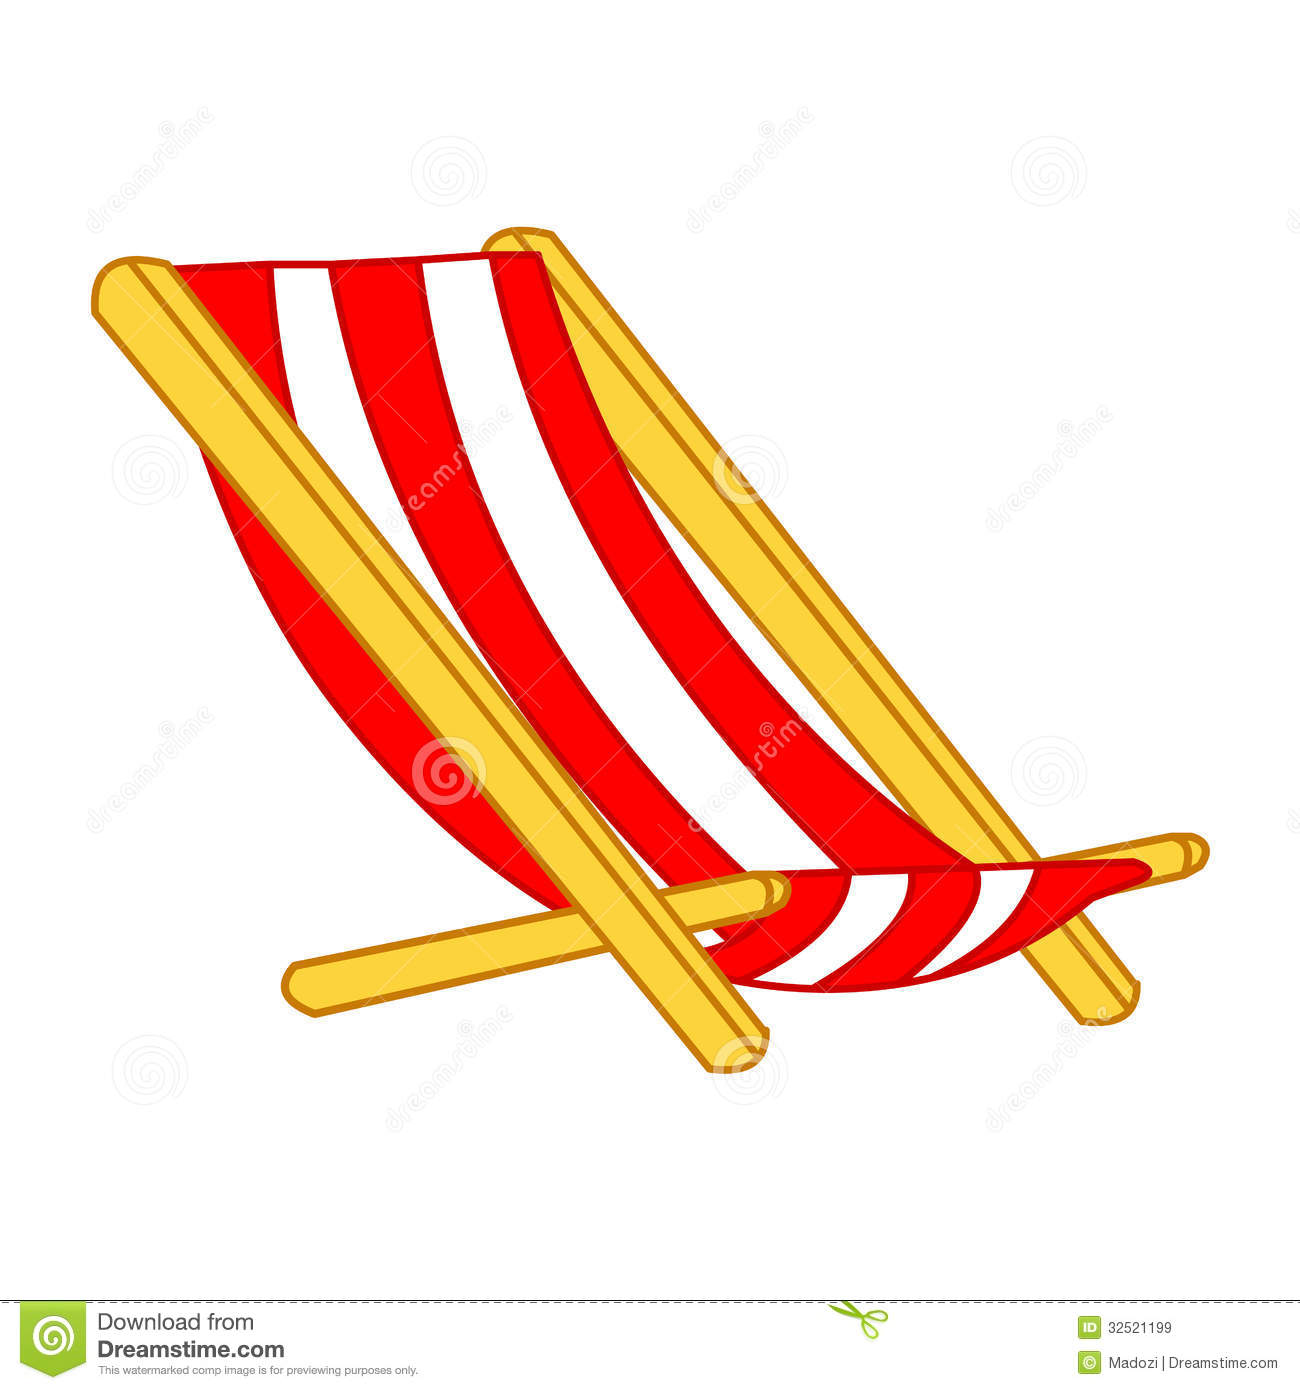 Adirondack chairs clipartsilhouette free images at clkercom - Source Thumbs Dreamstime Com